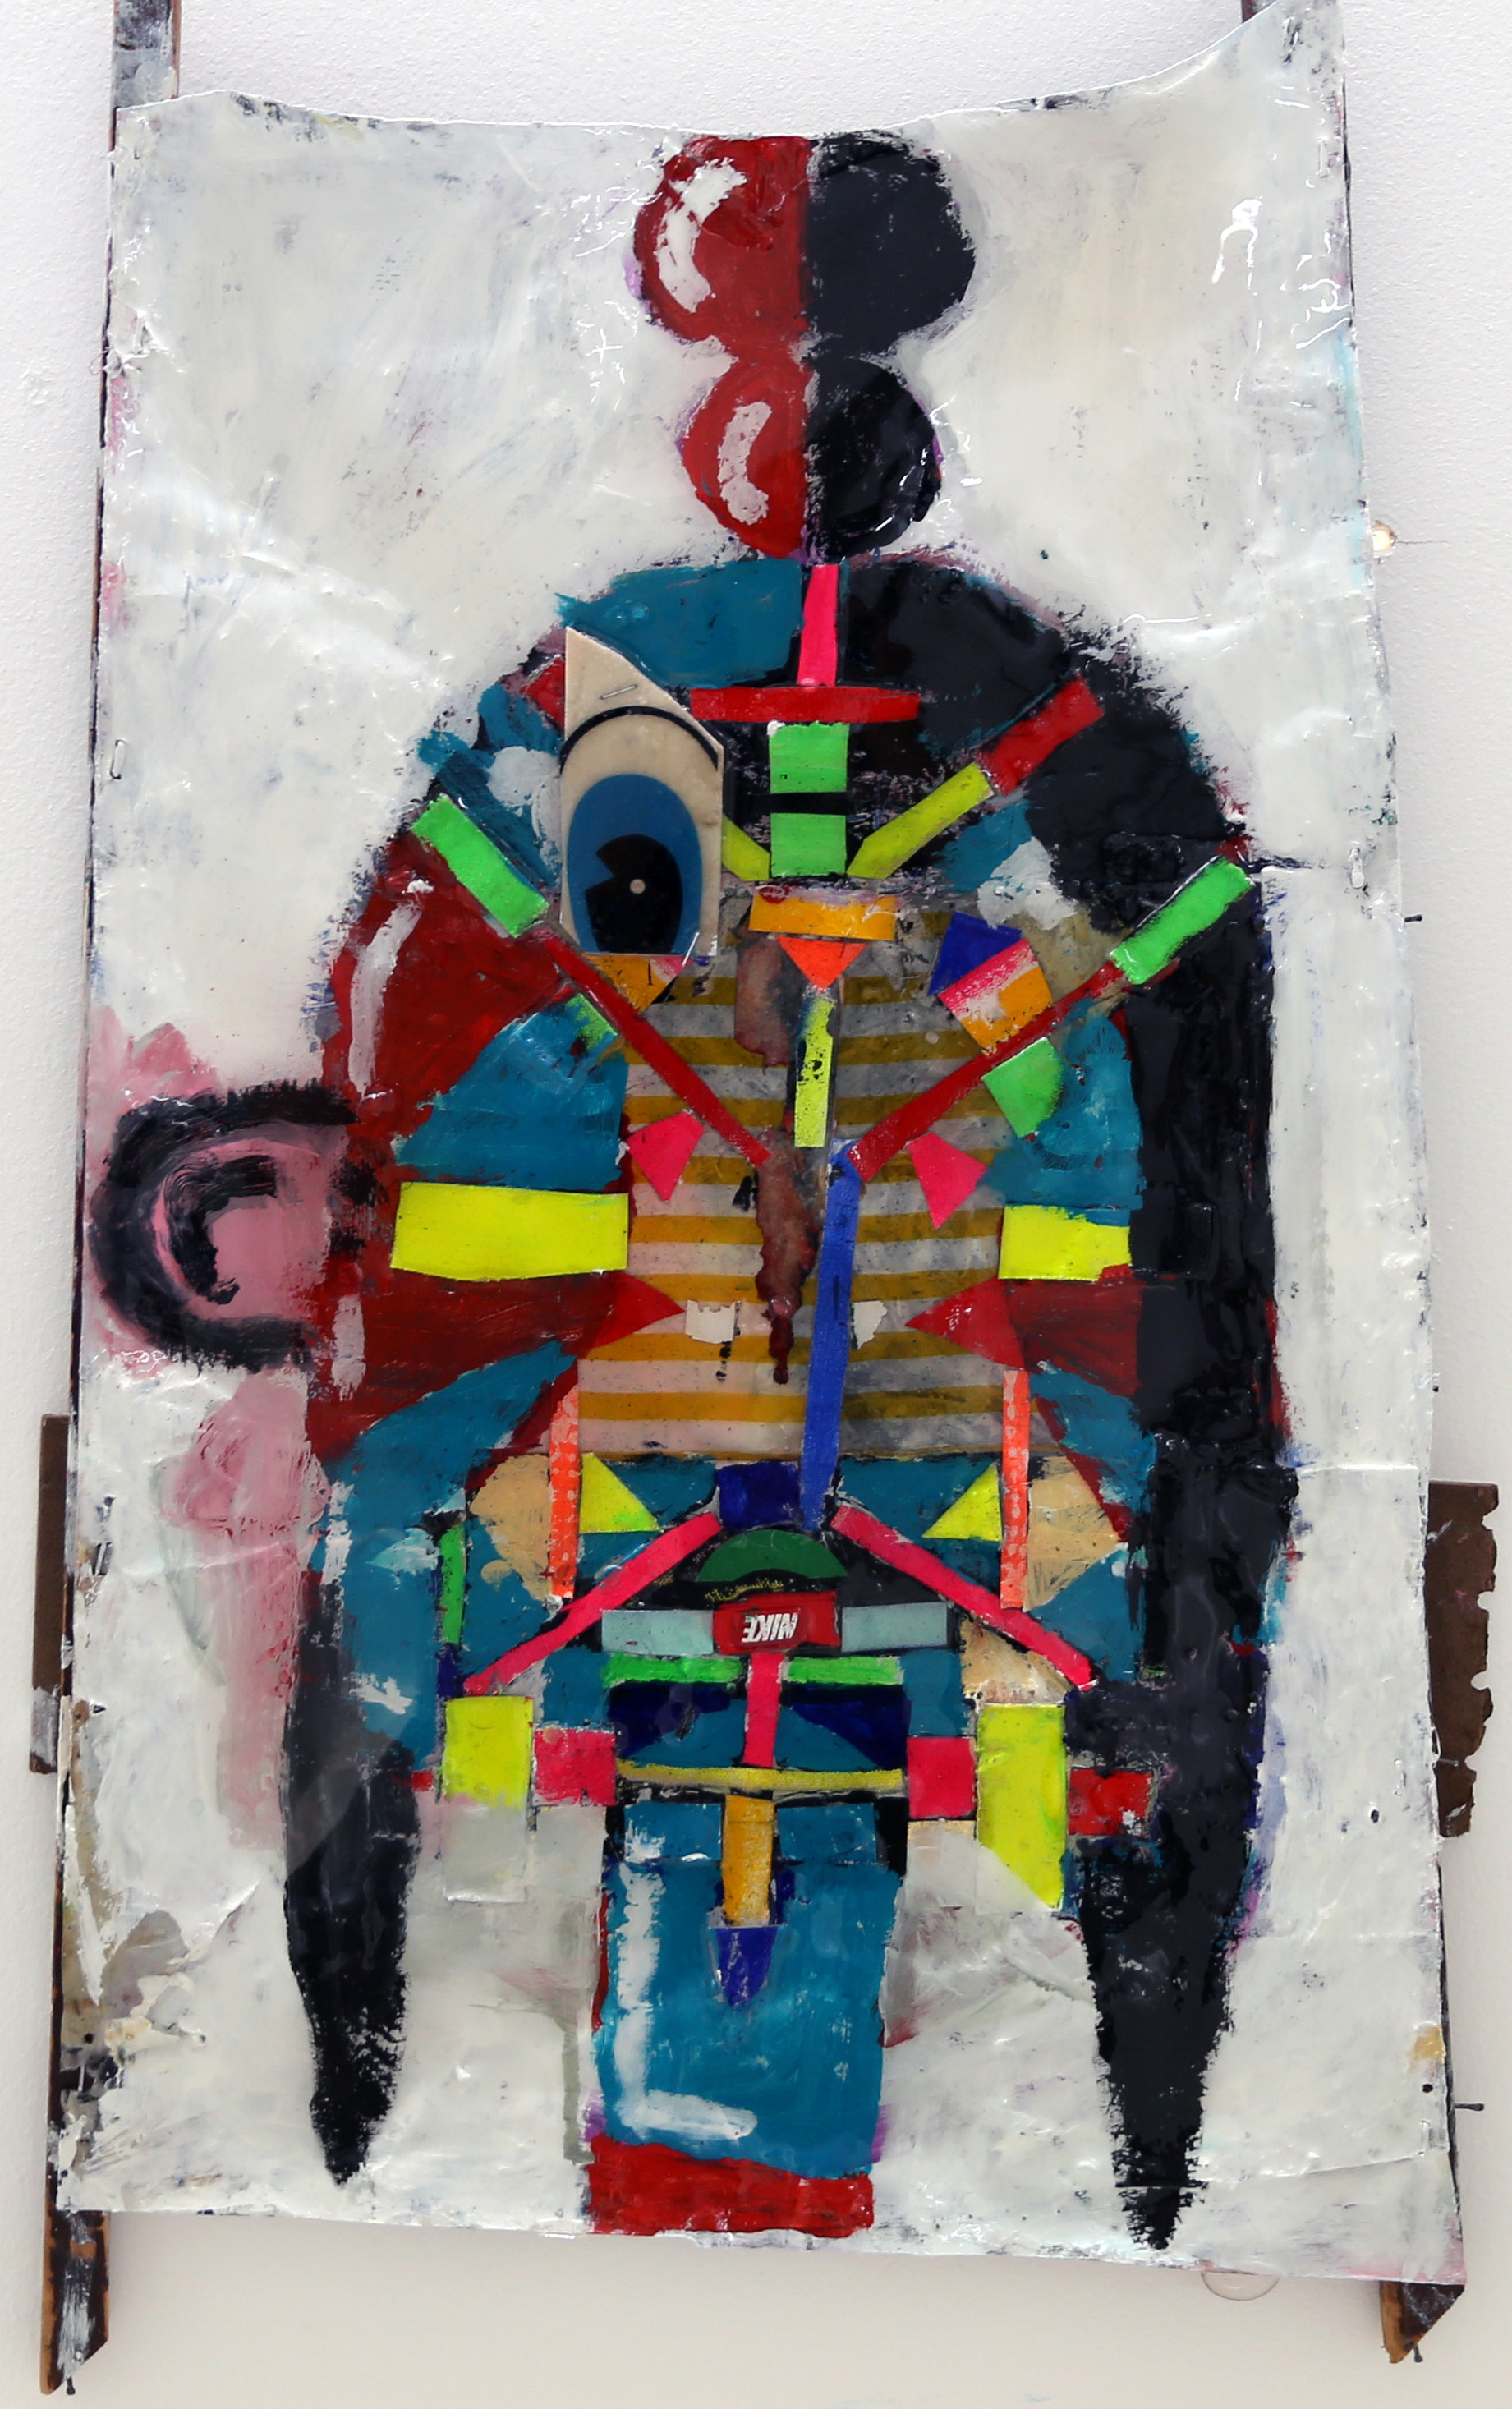 BAST_Kite_65x41cm_Collage_And_Acrylic_On_Wood.jpg